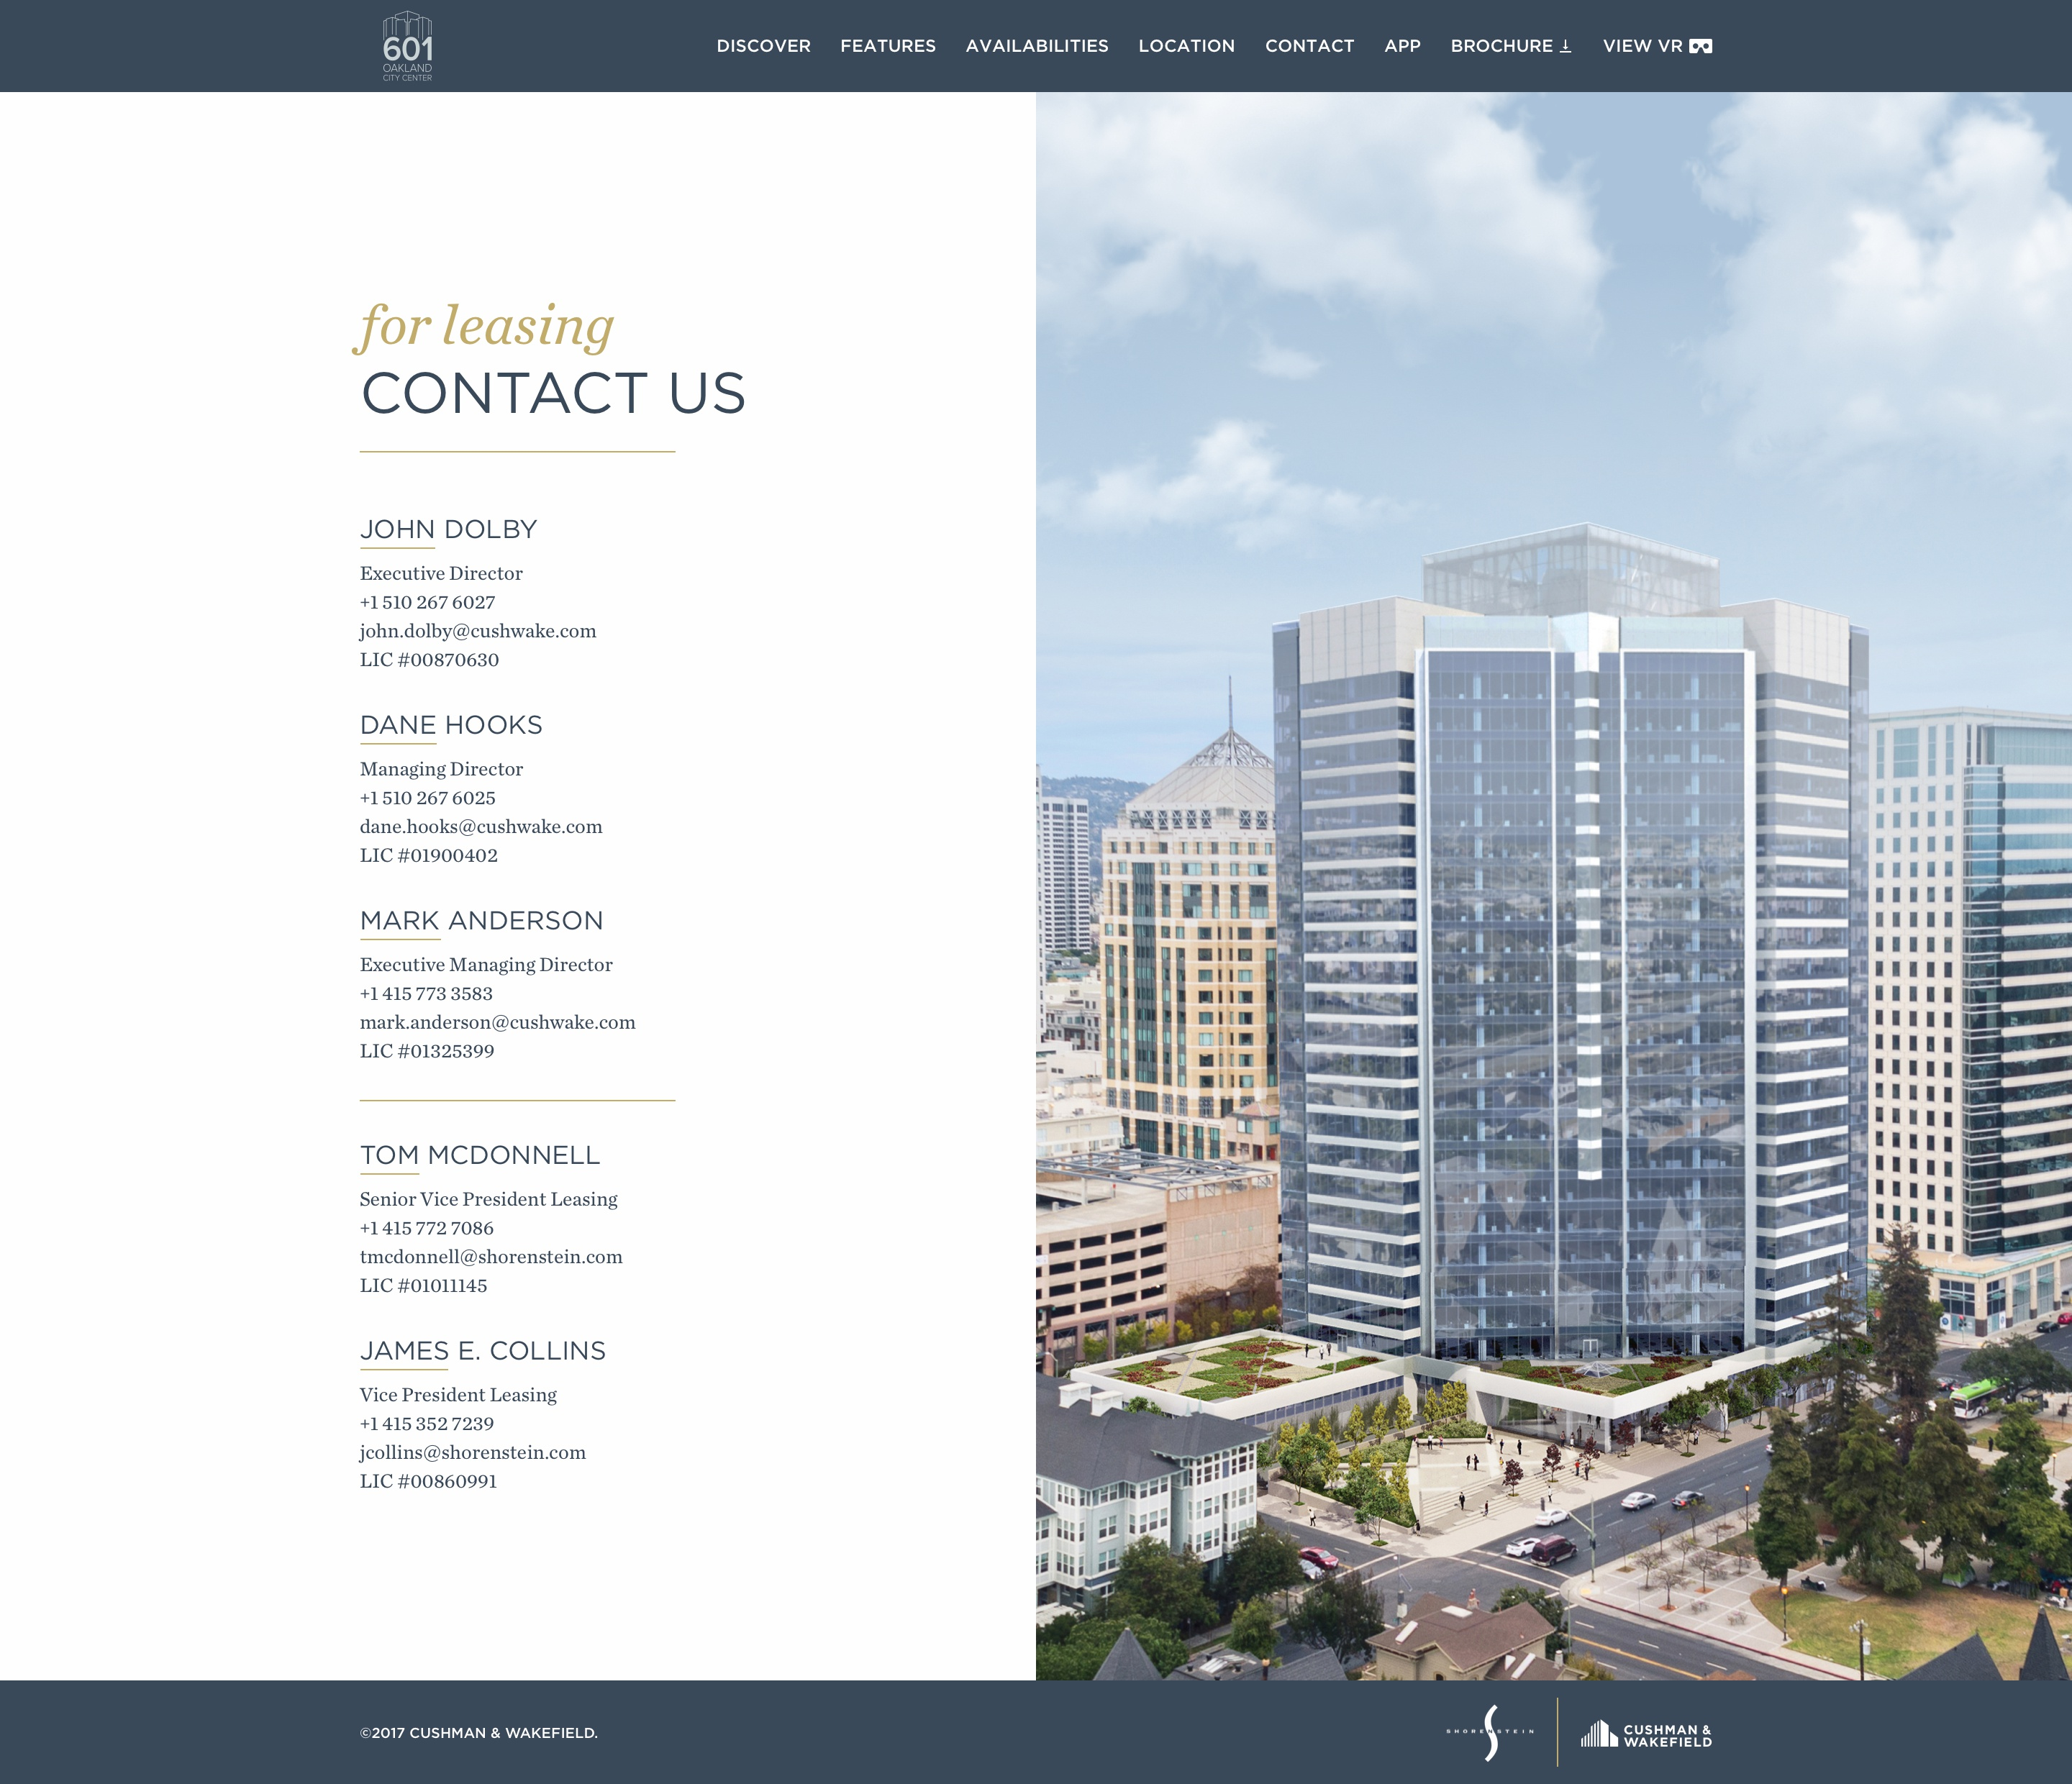 601citycenter   contact page   desktop